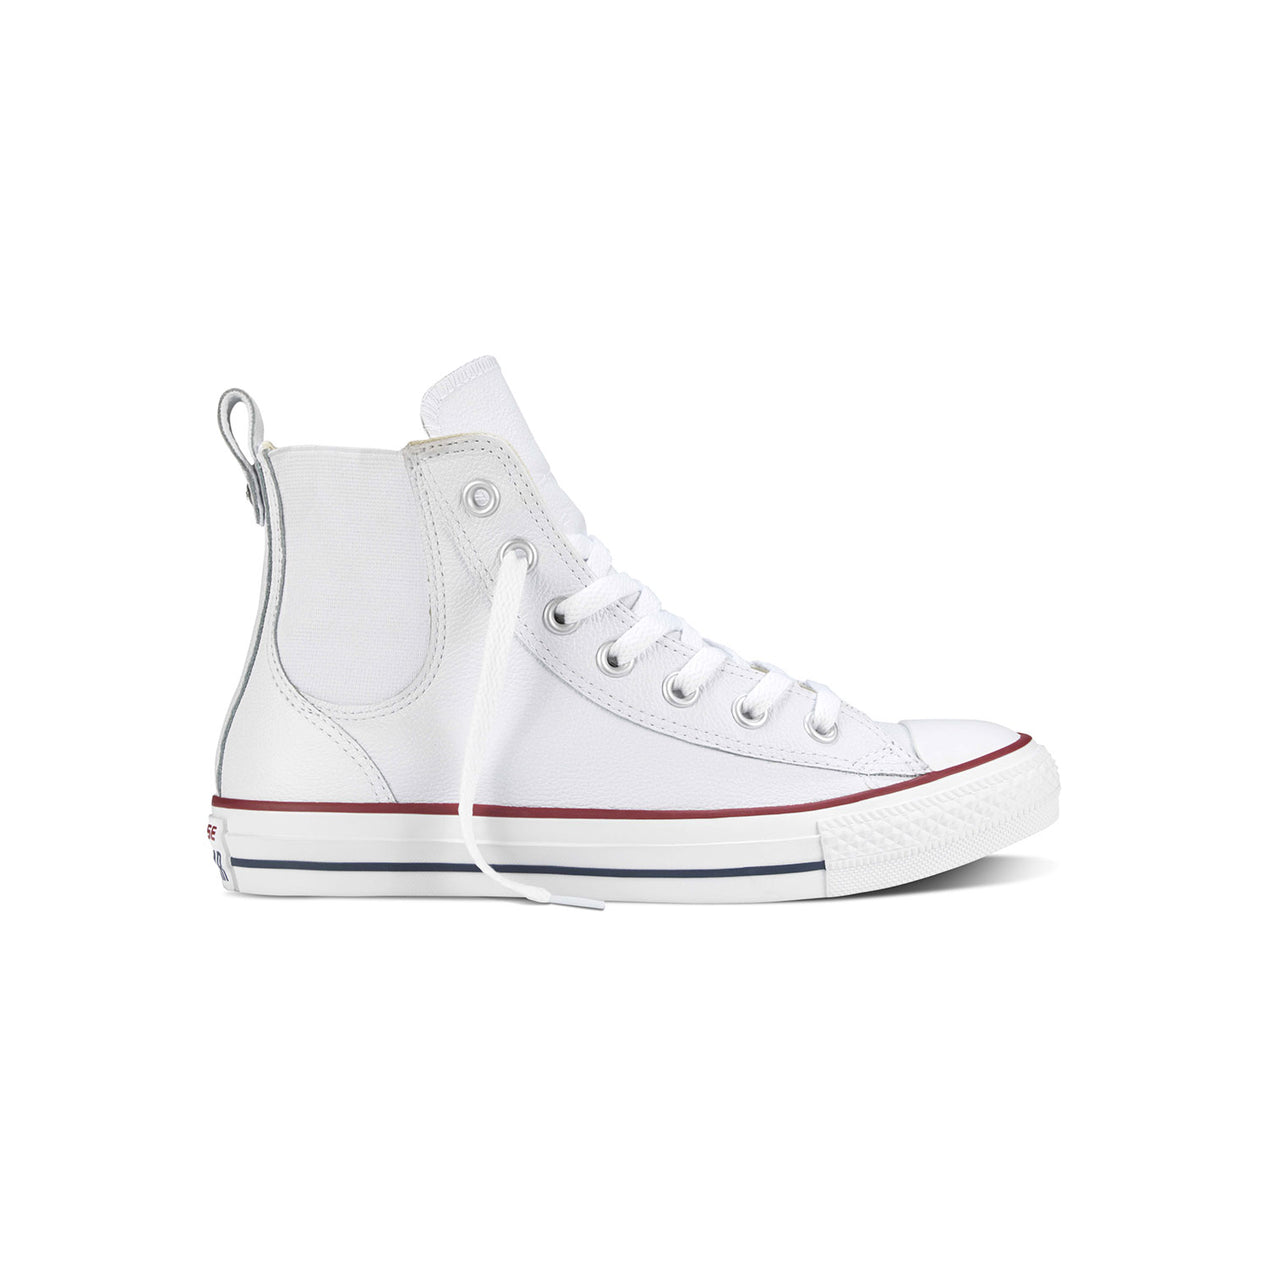 dff6db915a8b Converse Women s Chuck Taylor All Star Chelsee Leather